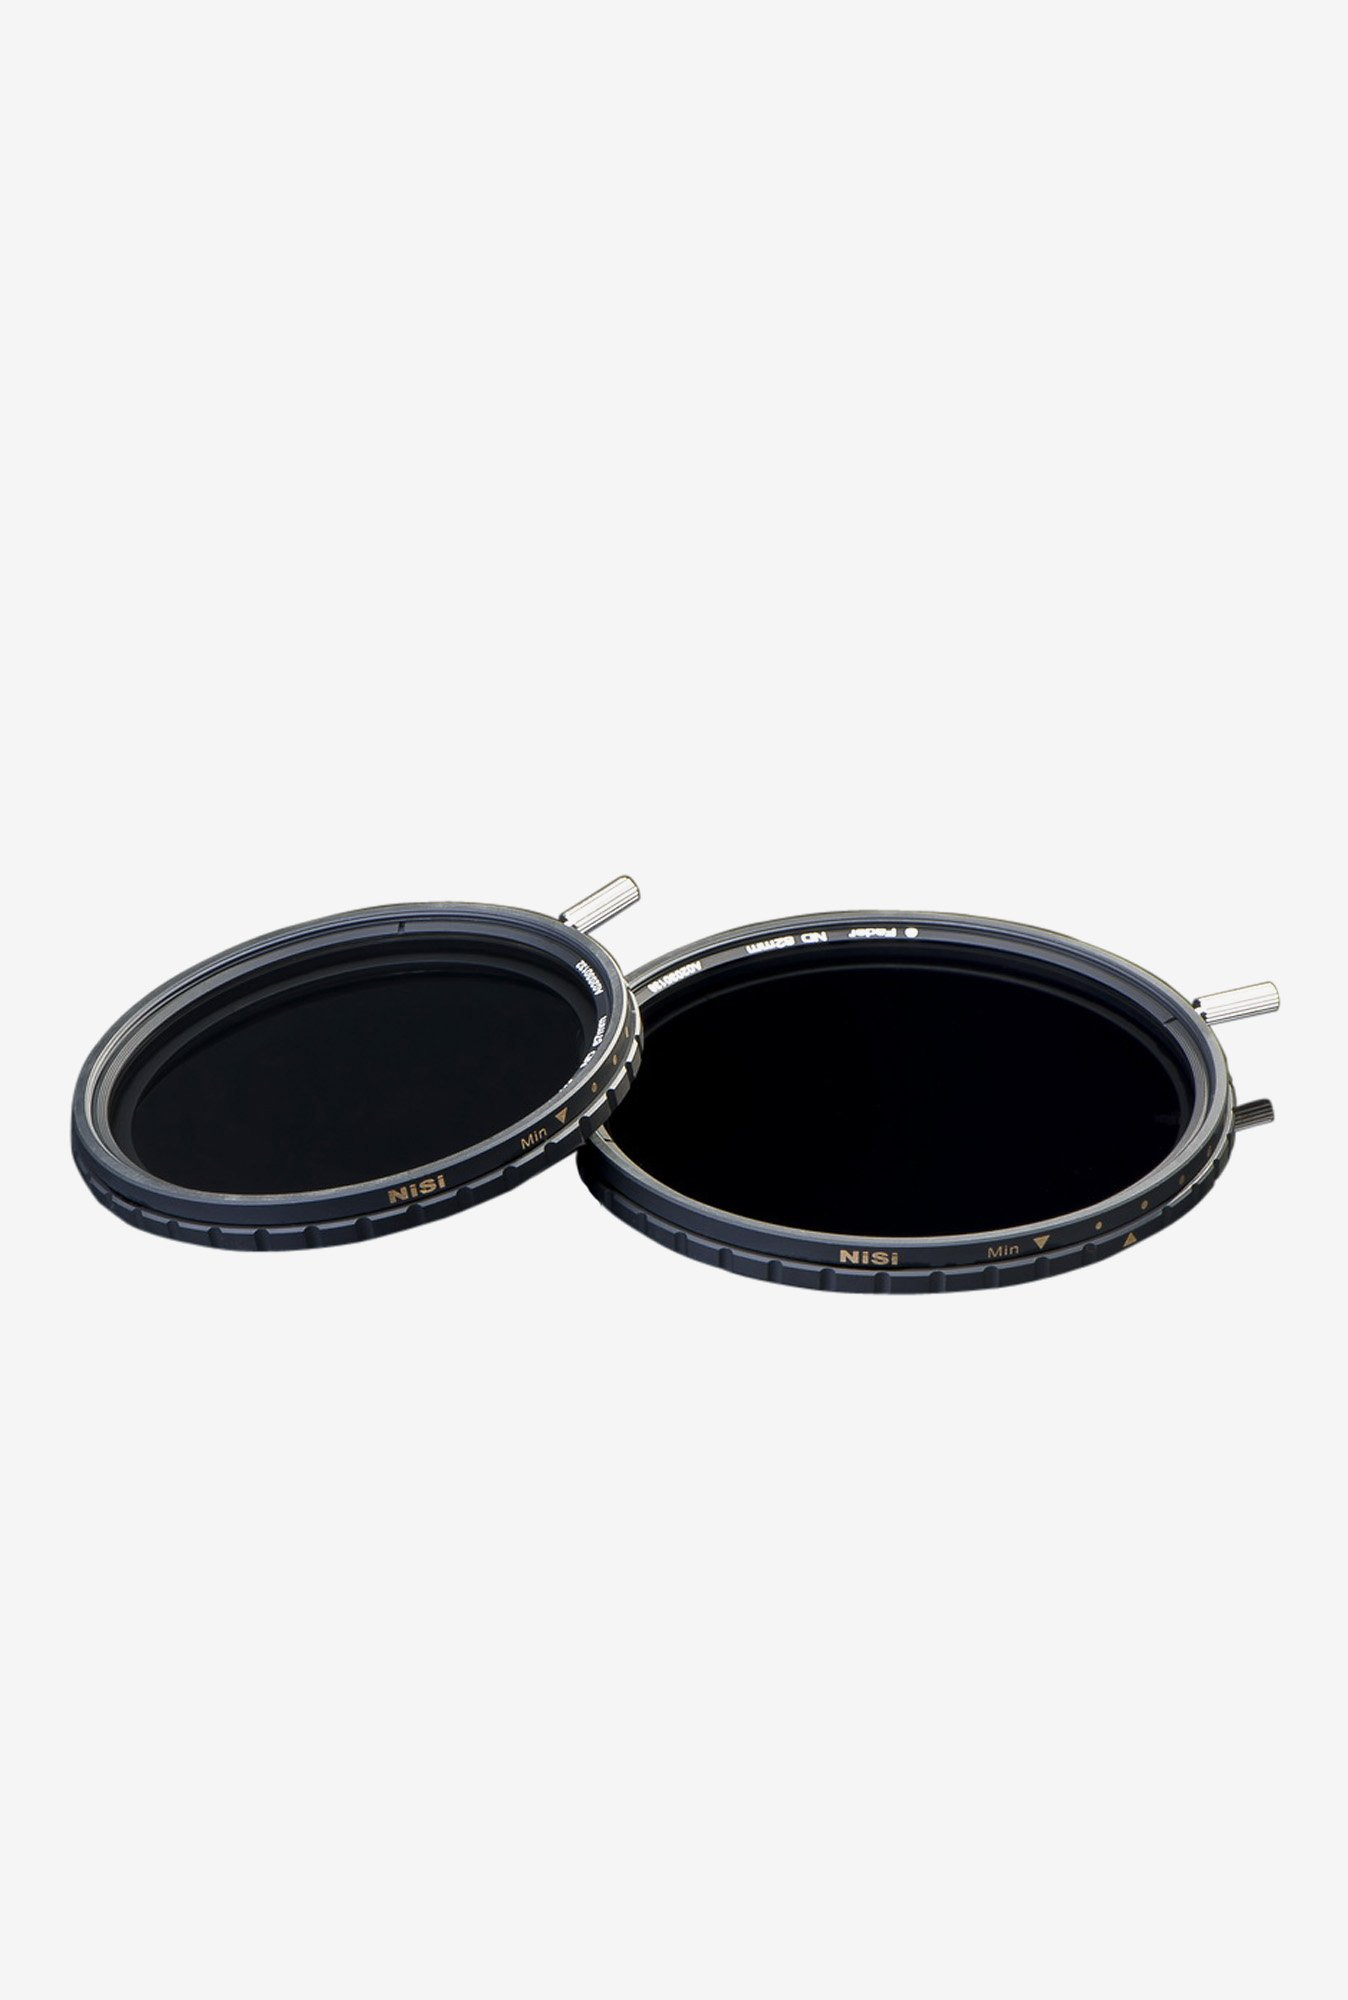 Nisi ND 4-500 67mm Fader Filter Black